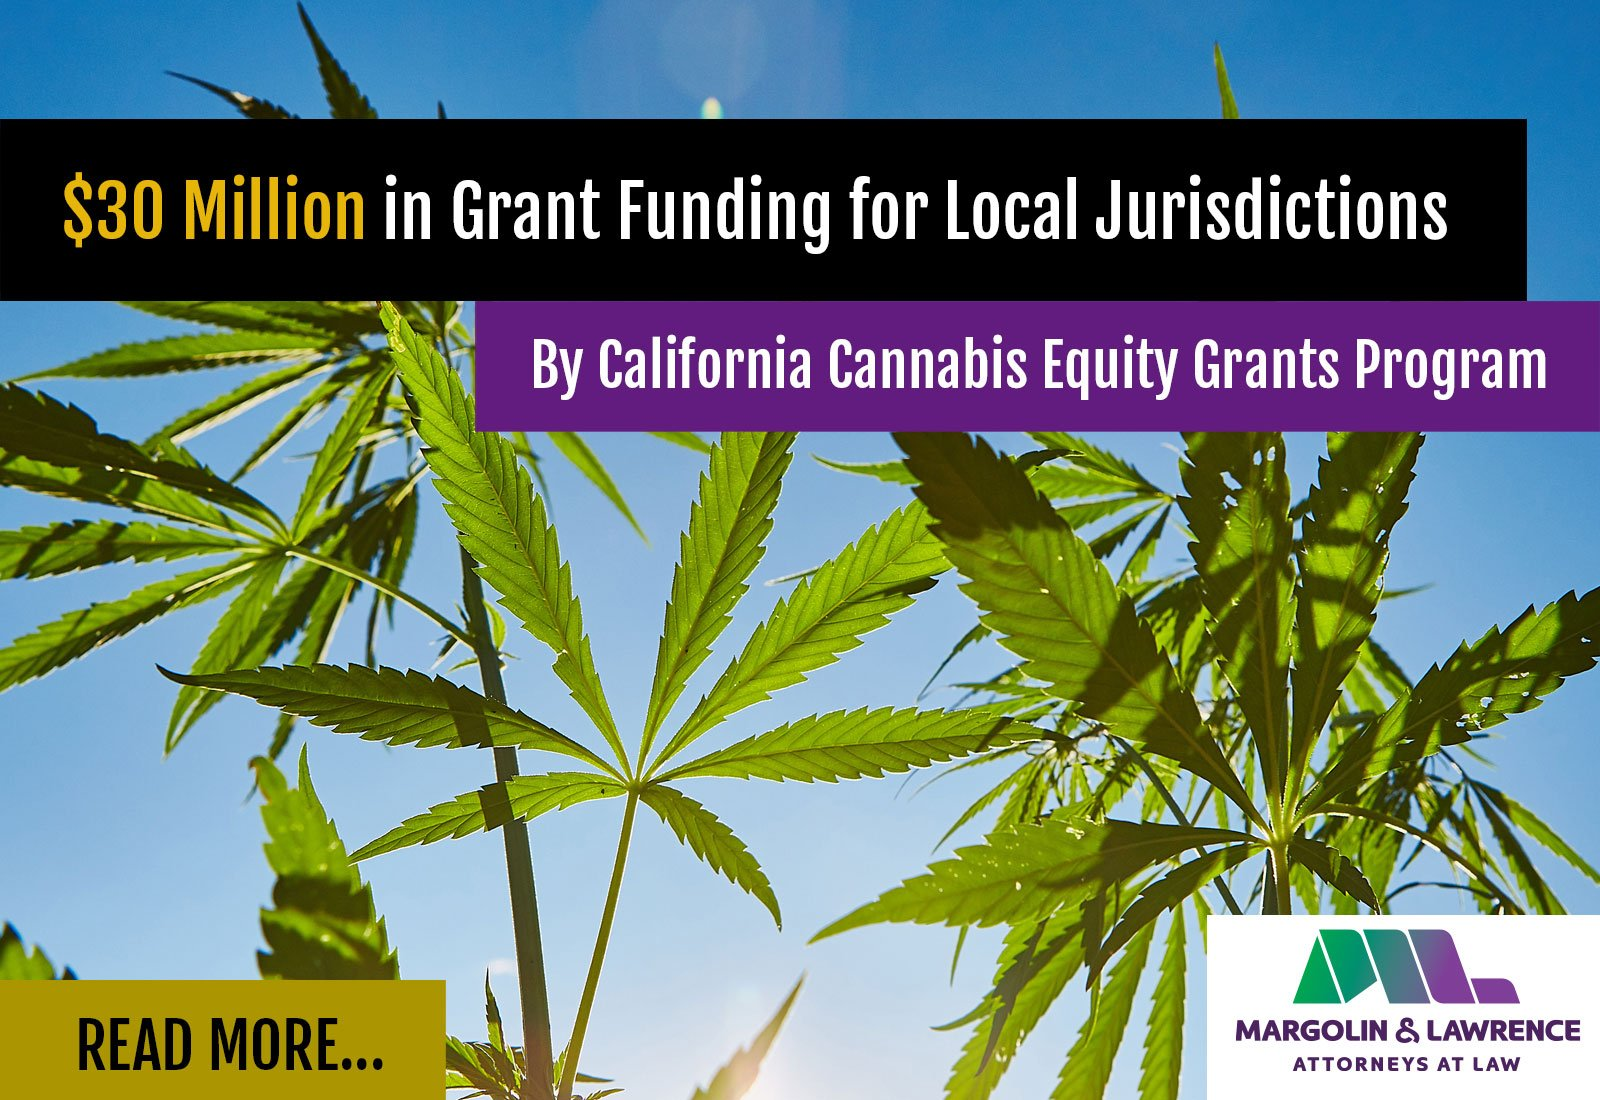 California Cannabis Equity Grants Program Provides $30 Million in Grant Funding for Local Jurisdictions